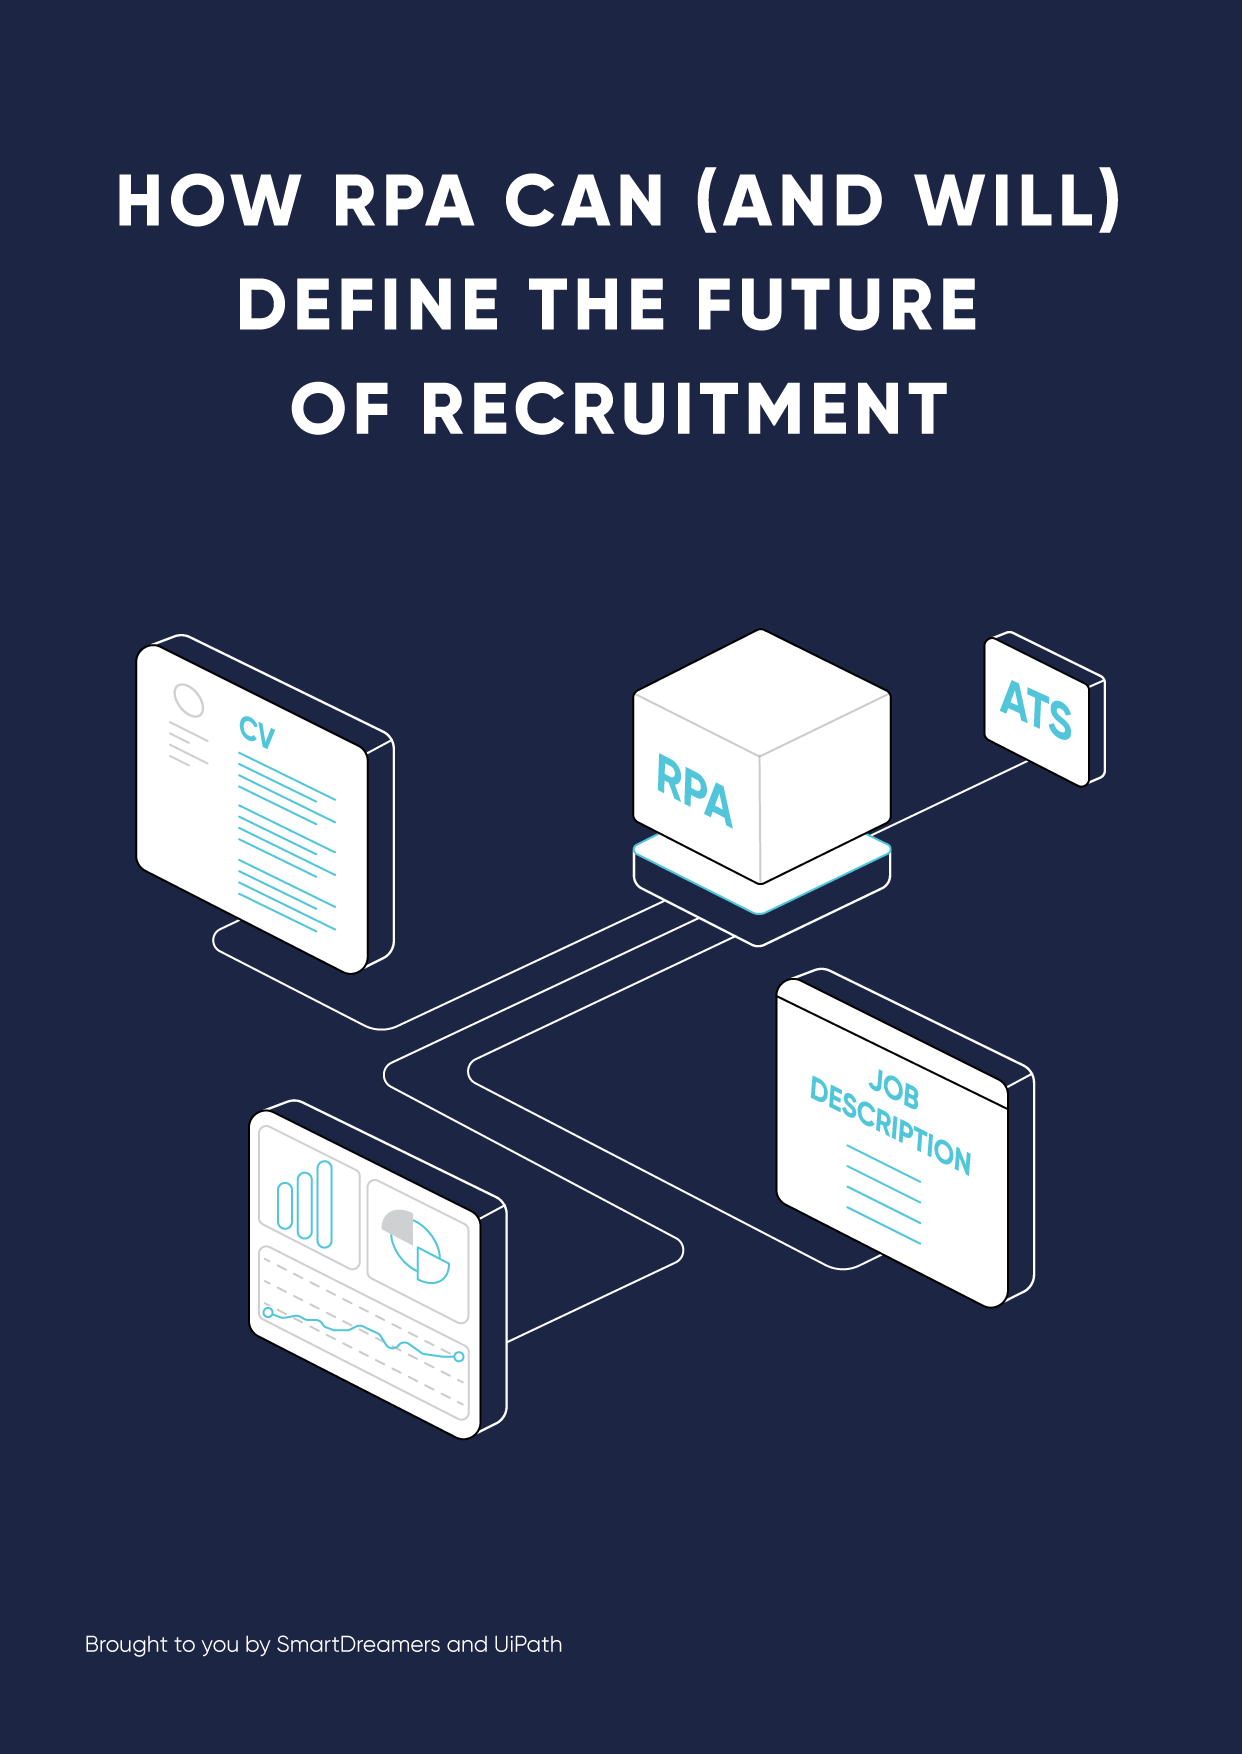 How Robotic Process Automation can define the future of recruitment